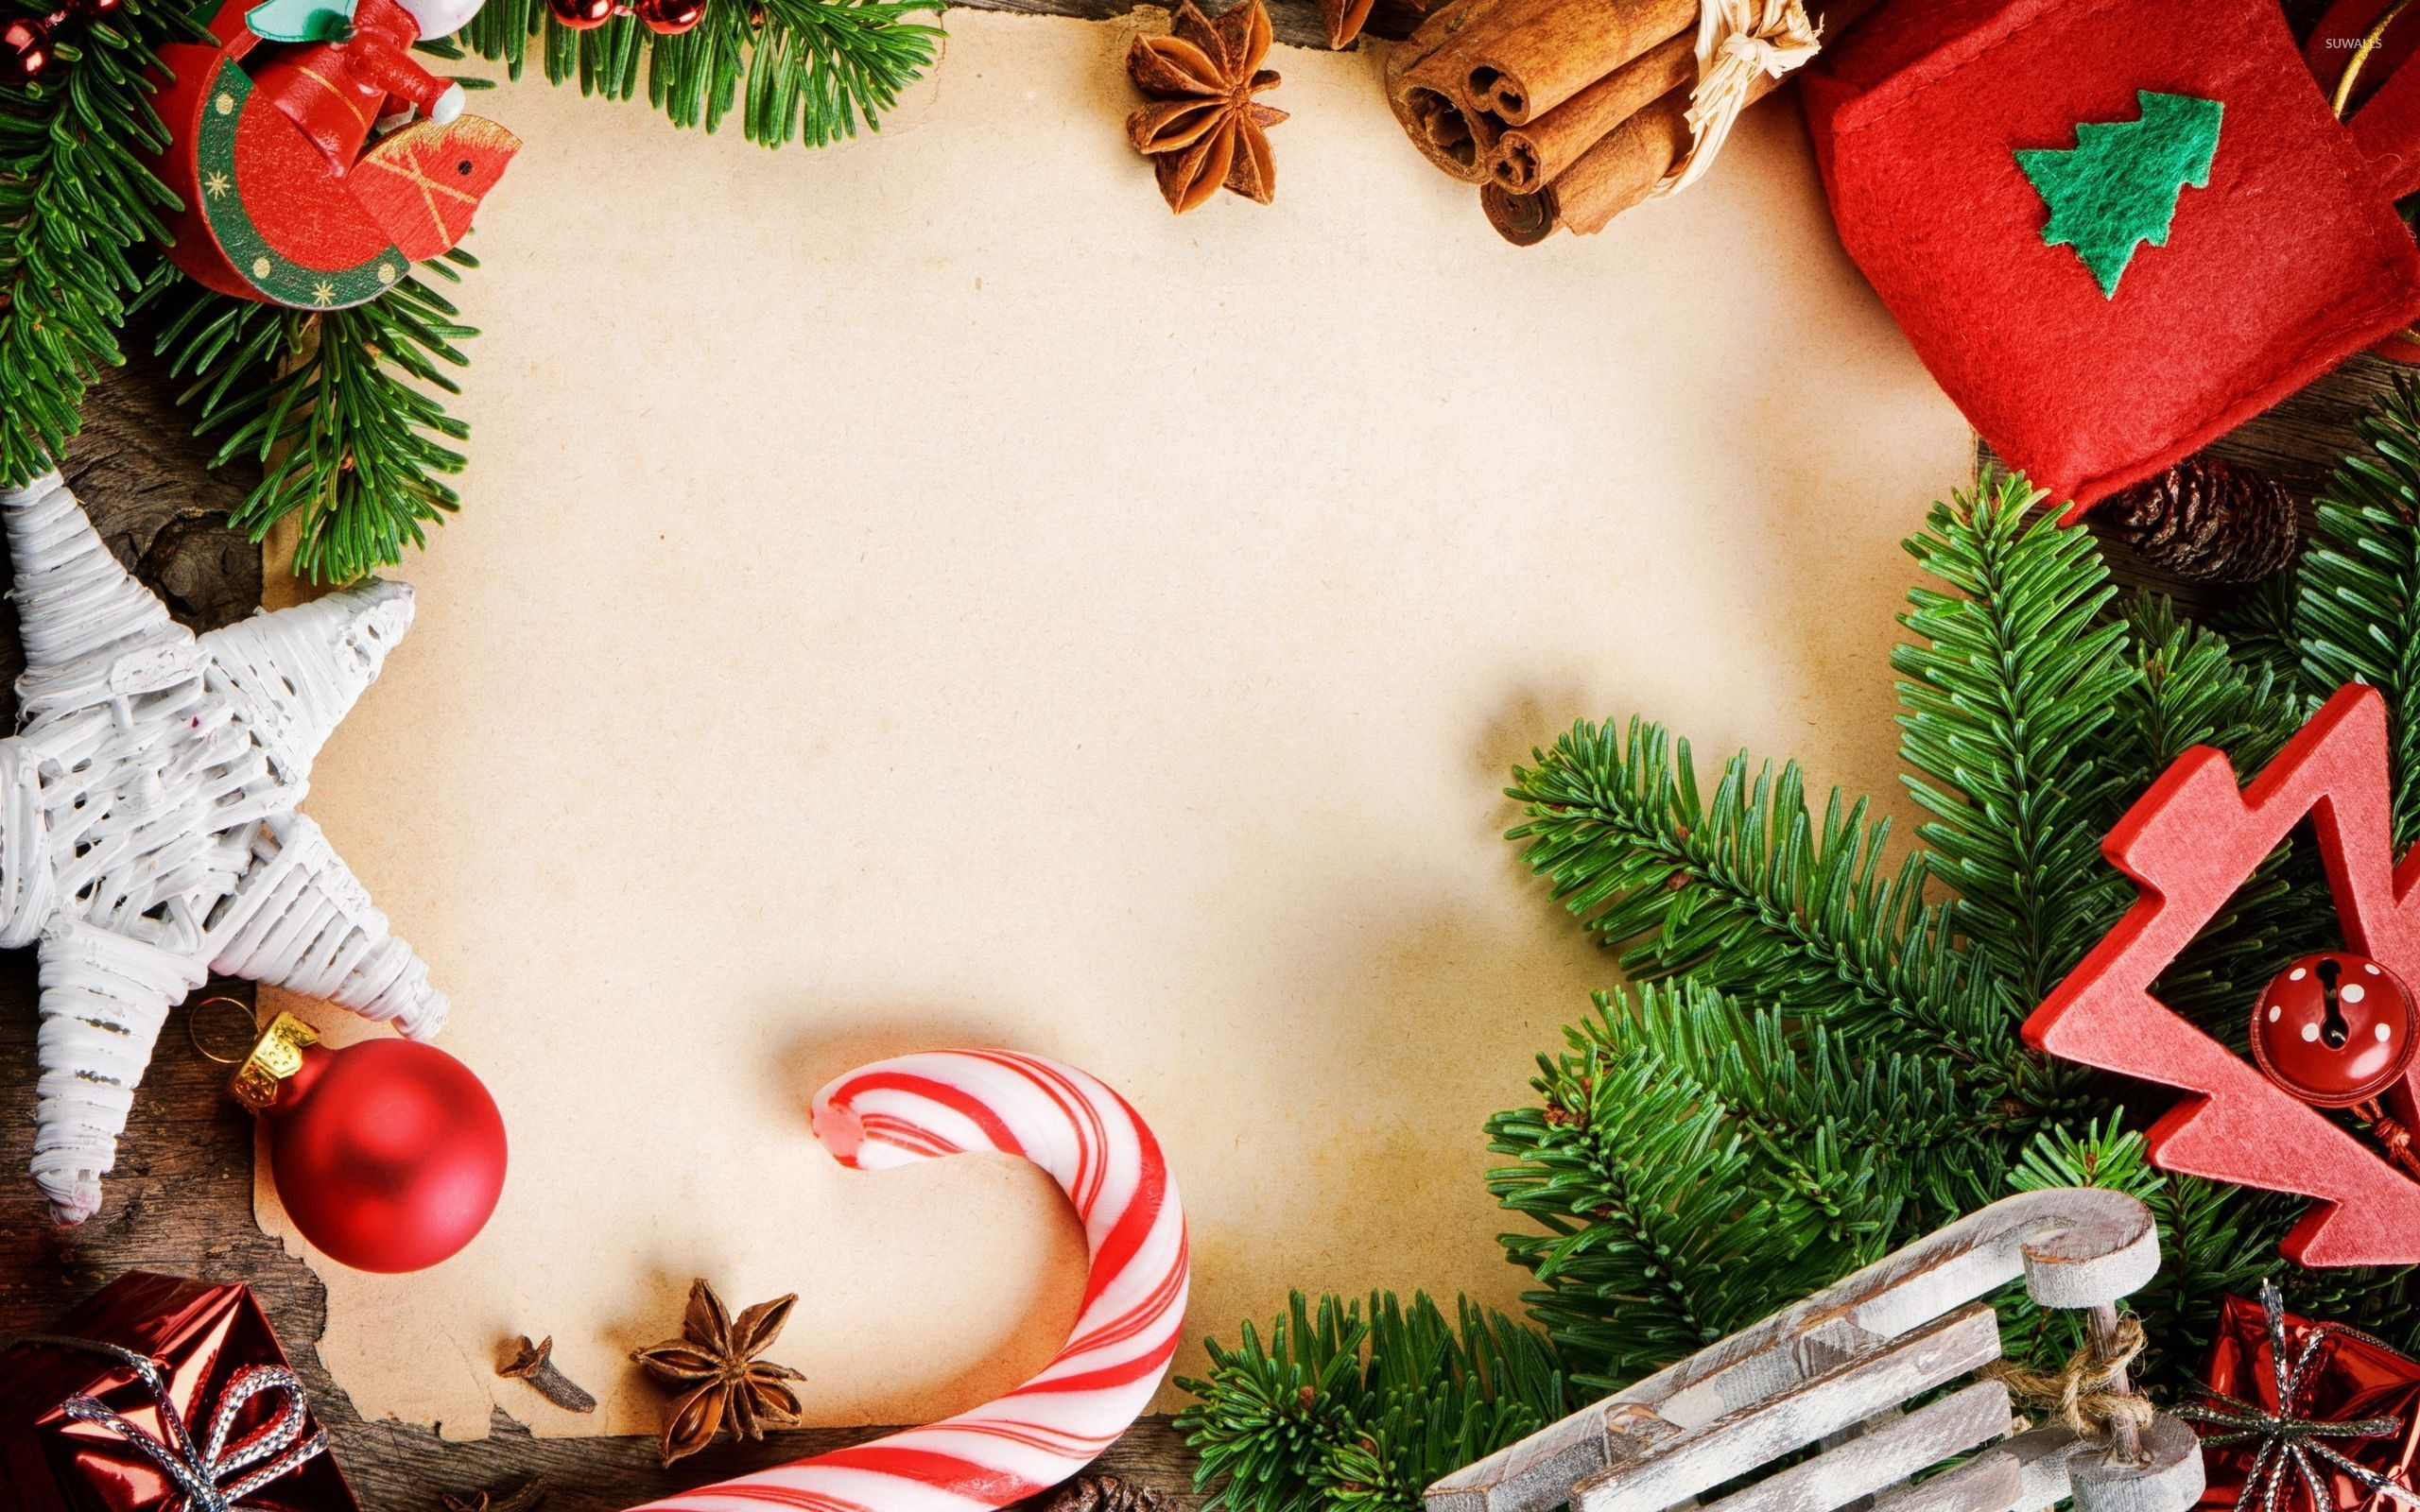 Christmas Decorations Wallpaper ·①